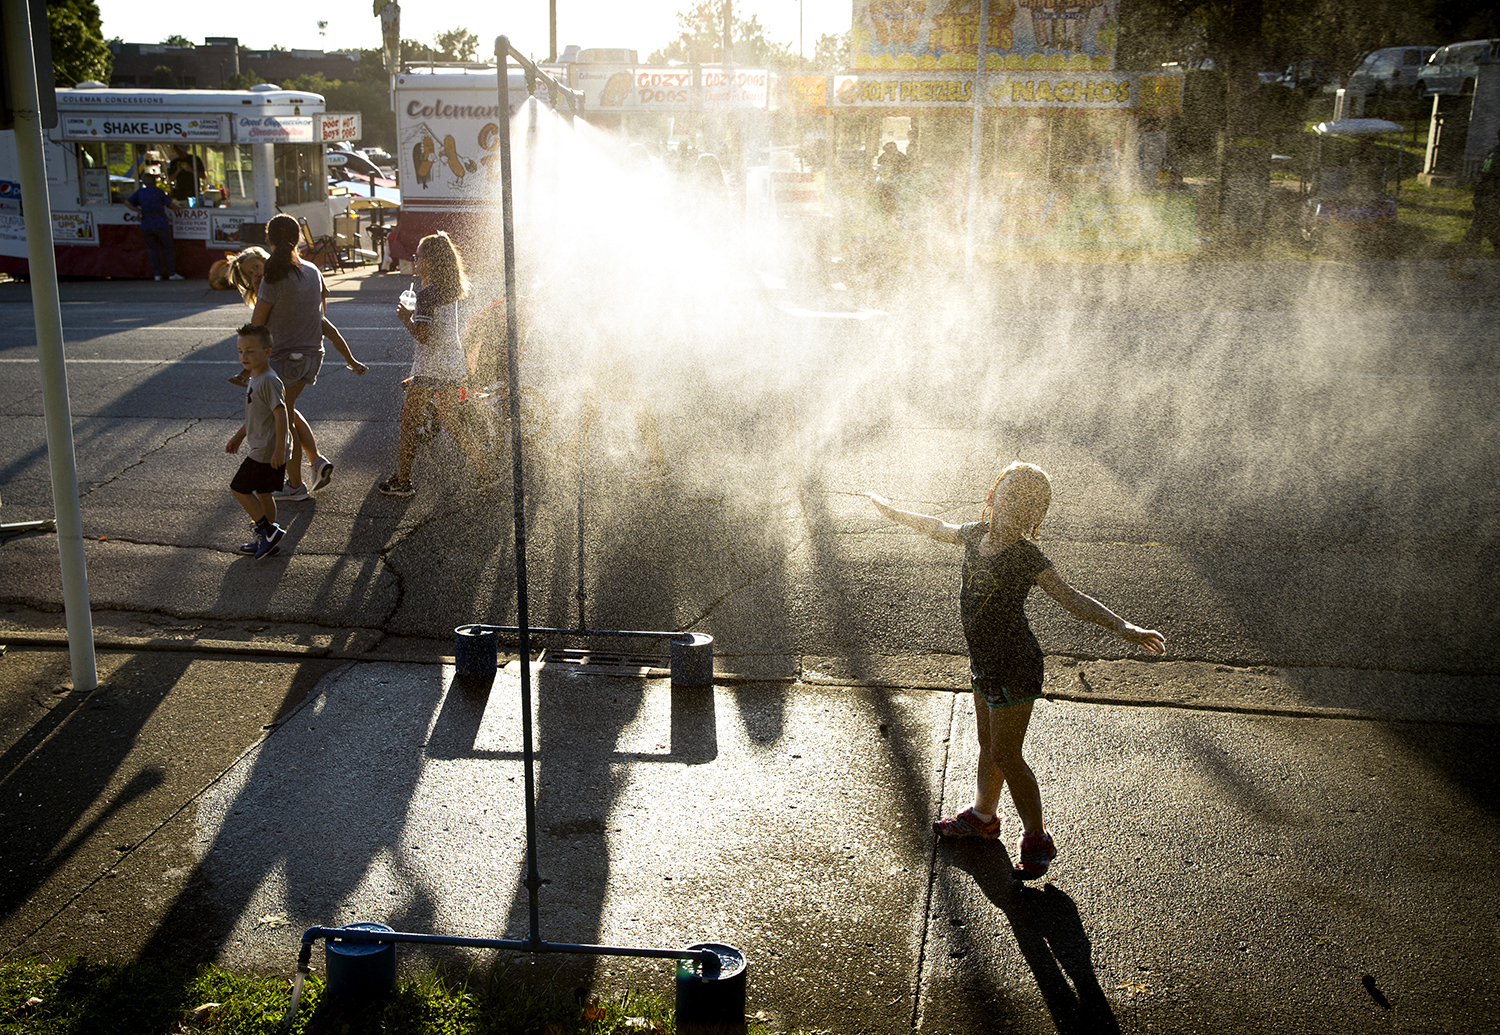 Sophia Jordan, 6, cools off in a mist sprayer at the Illinois State Fair Aug. 17. Rich Saal/The State Journal-Register